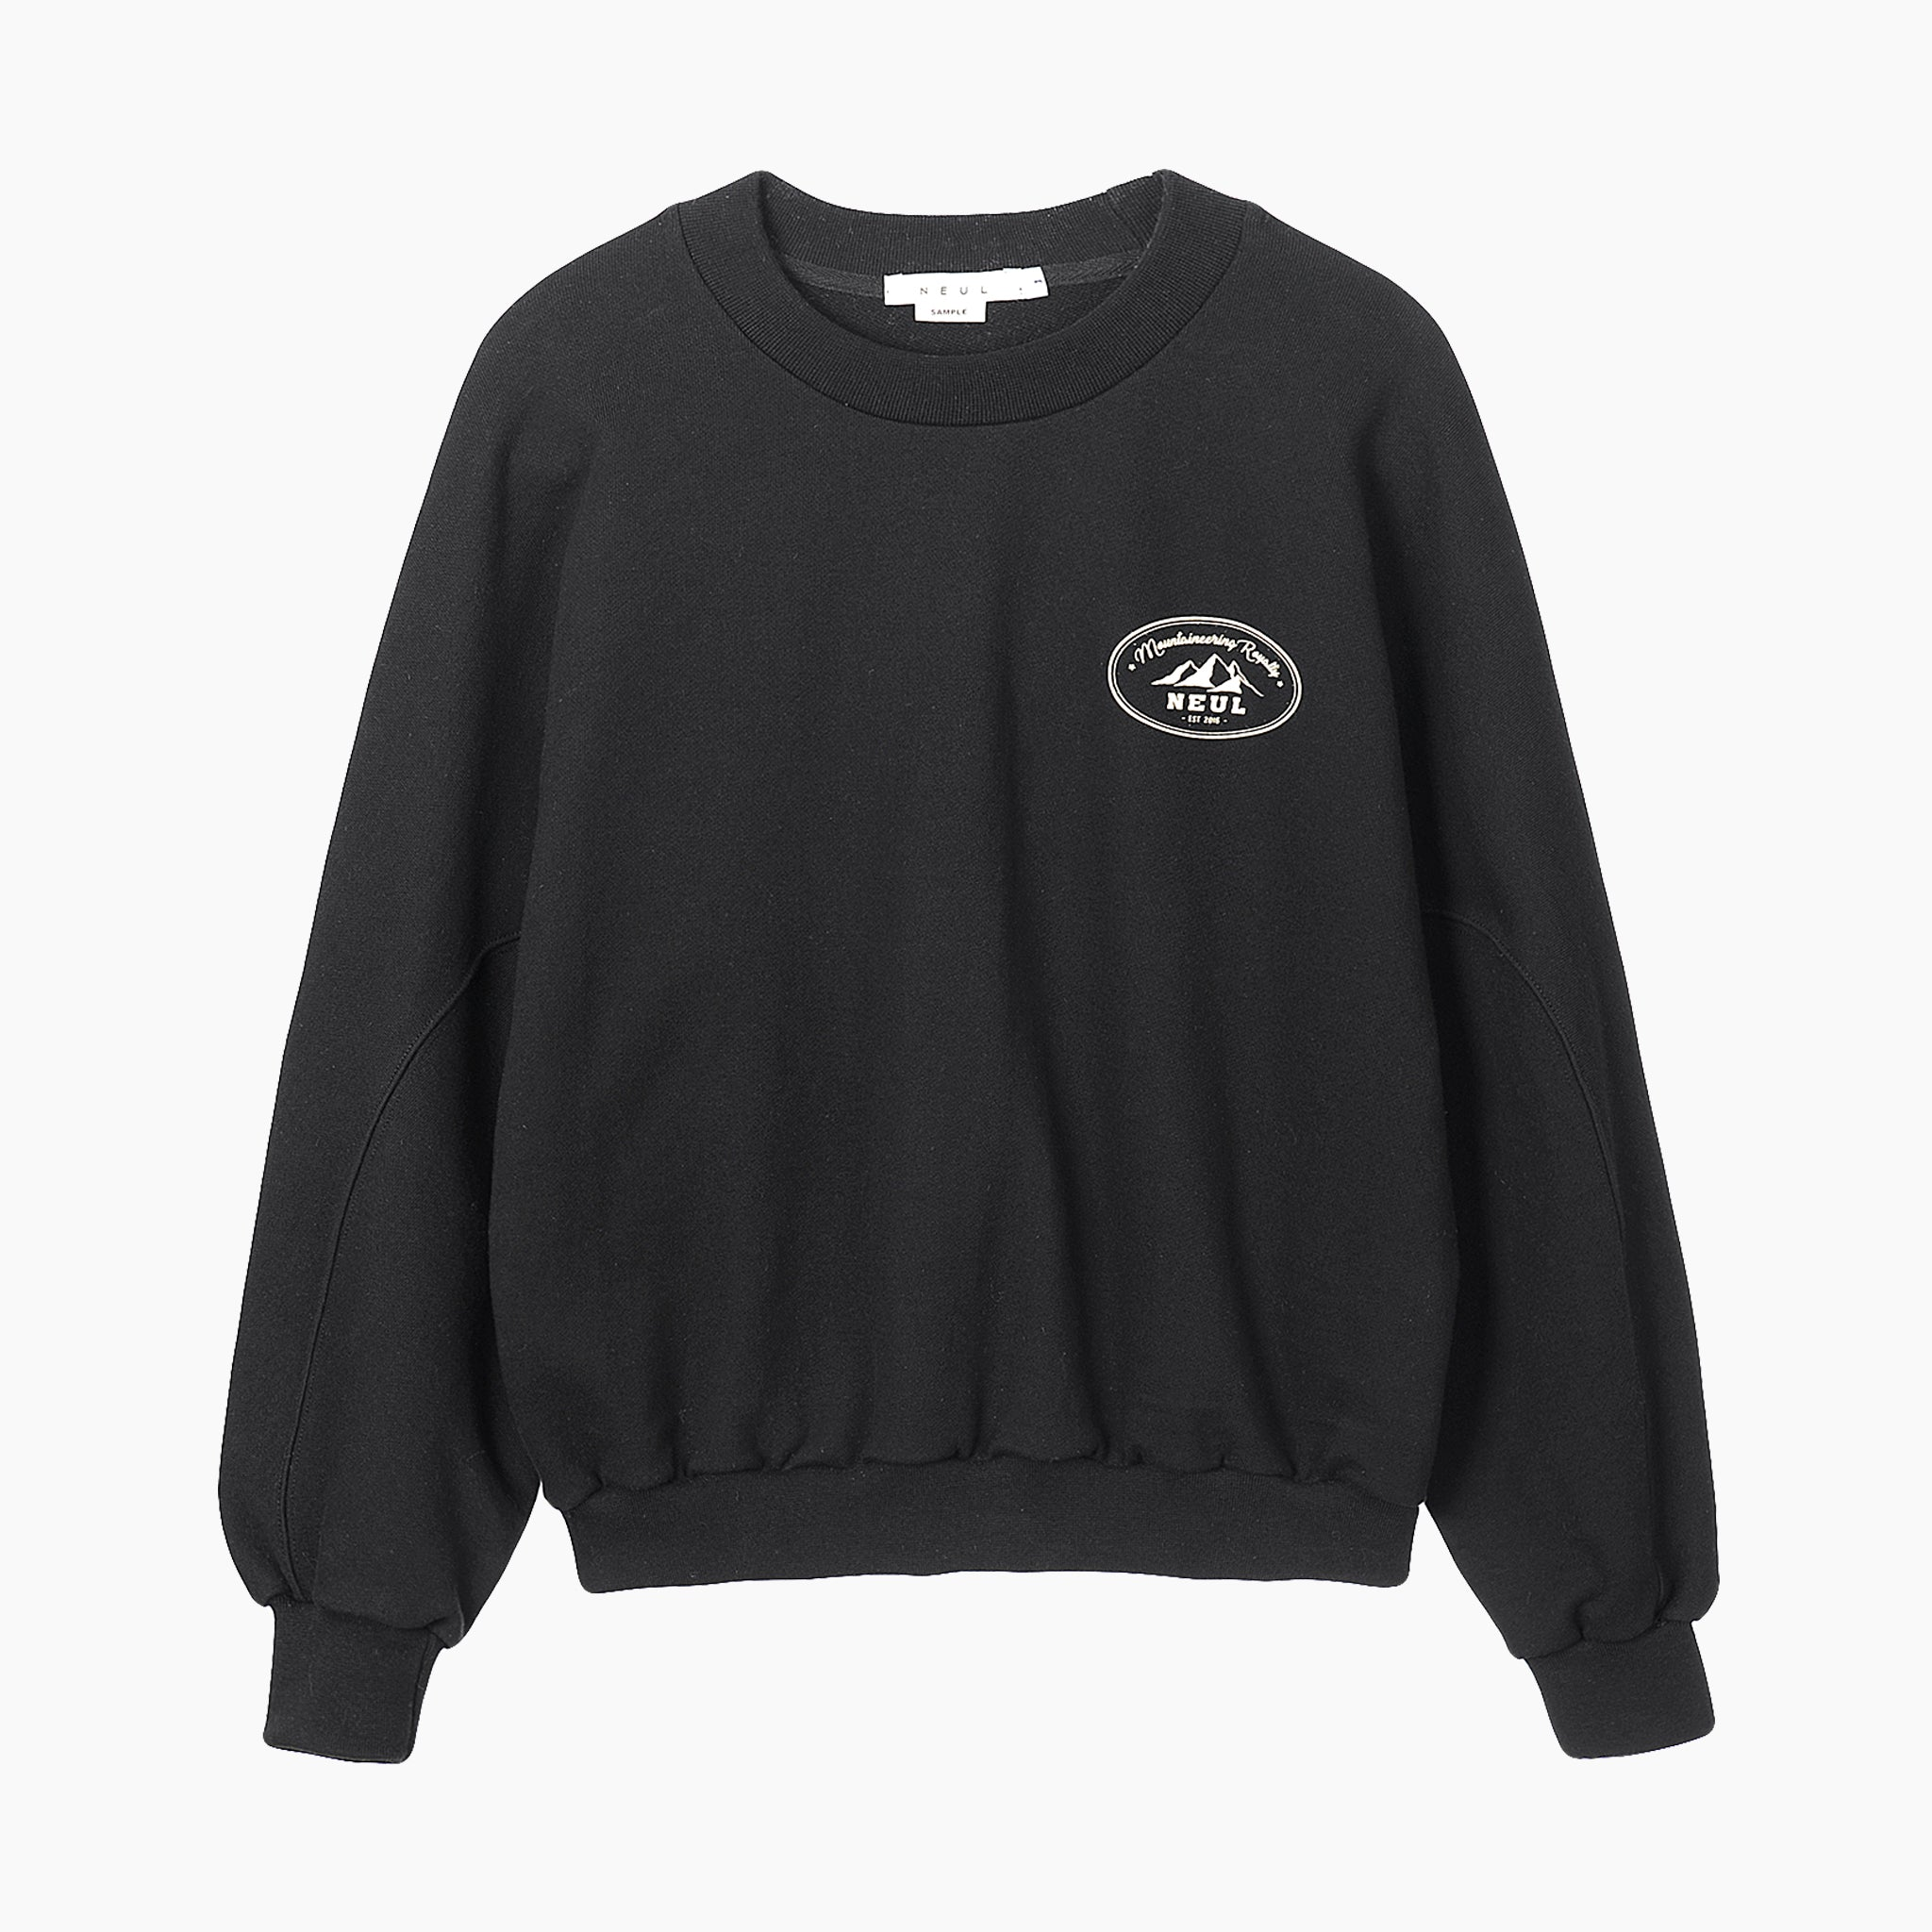 Neul Mountaineering Royalty Sweater in Black